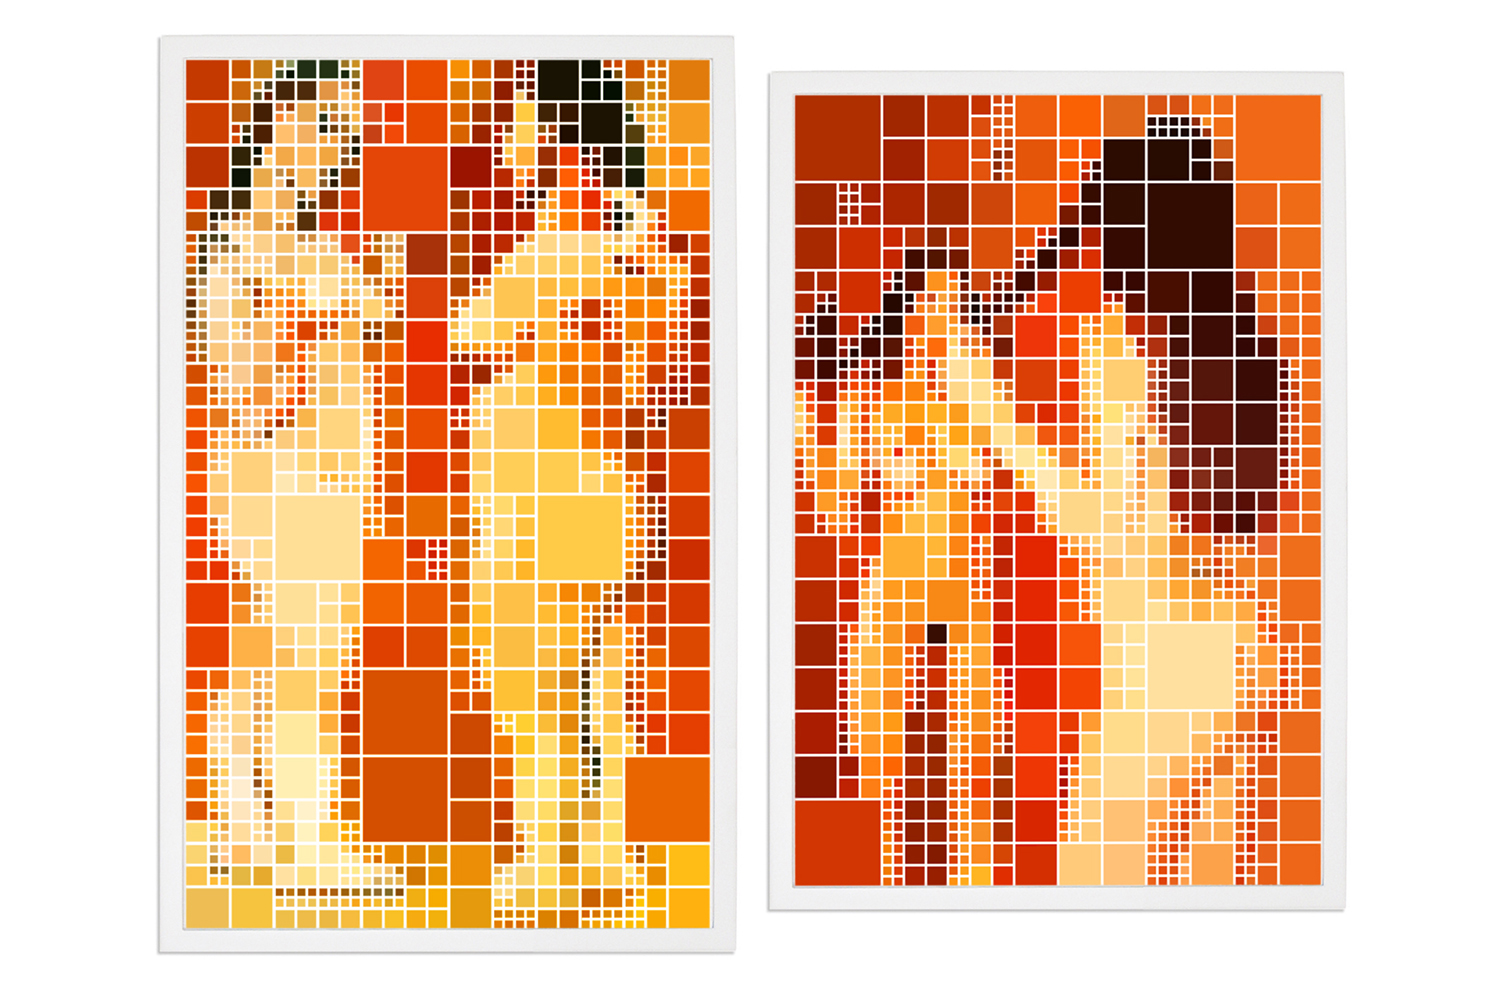 Four Resemblant Nudes, Two After Picasso • 2005/2006 • Photograph, digital print • 24.4 x 14.7 in, 22.6 x 14.7 in